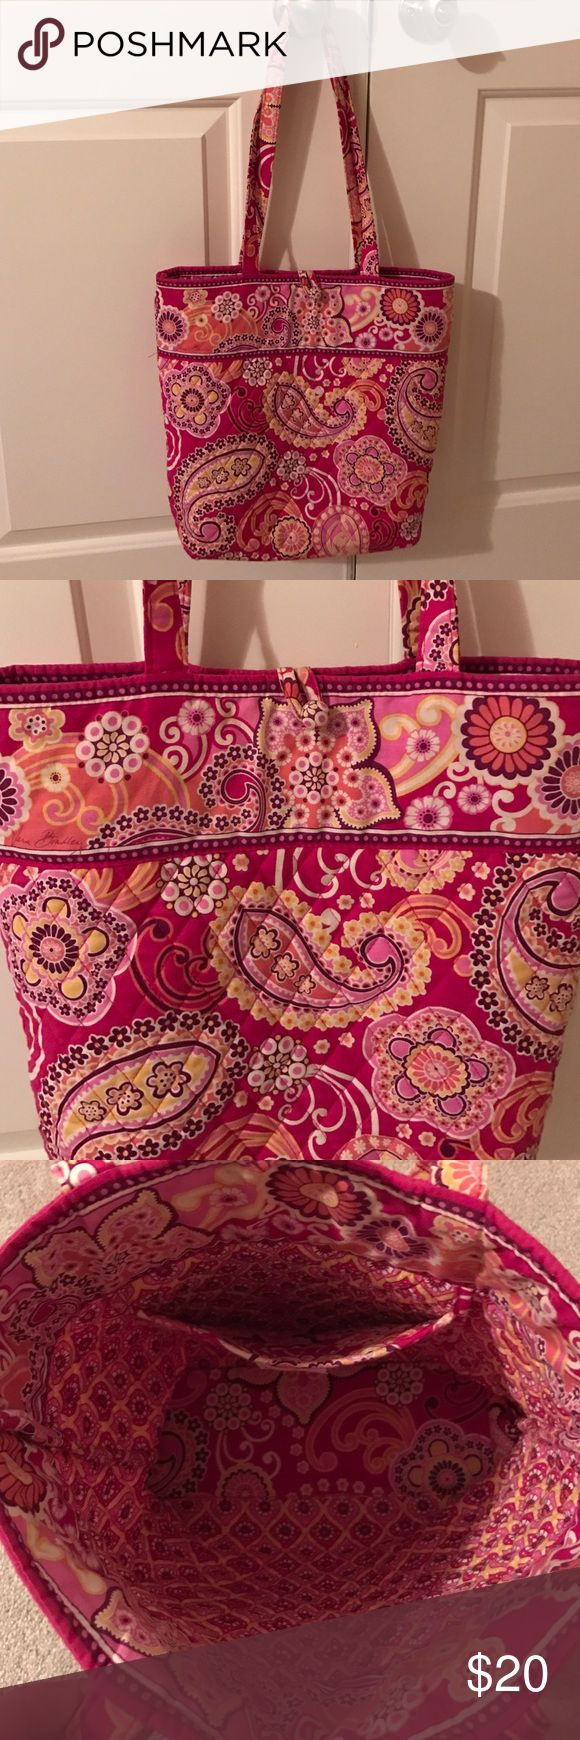 "Vera Bradley Tote Small Vera Bradley Tote Bag.  Great condition!  Has one pocket inside and a button and loop closure.  The button seems to hang loose, but I think that's the way it is made.  It is very secure.  Non smoking home.   Bag is approximately 13"" tall, 14"" wide and 4"" deep. Vera Bradley Bags Totes"